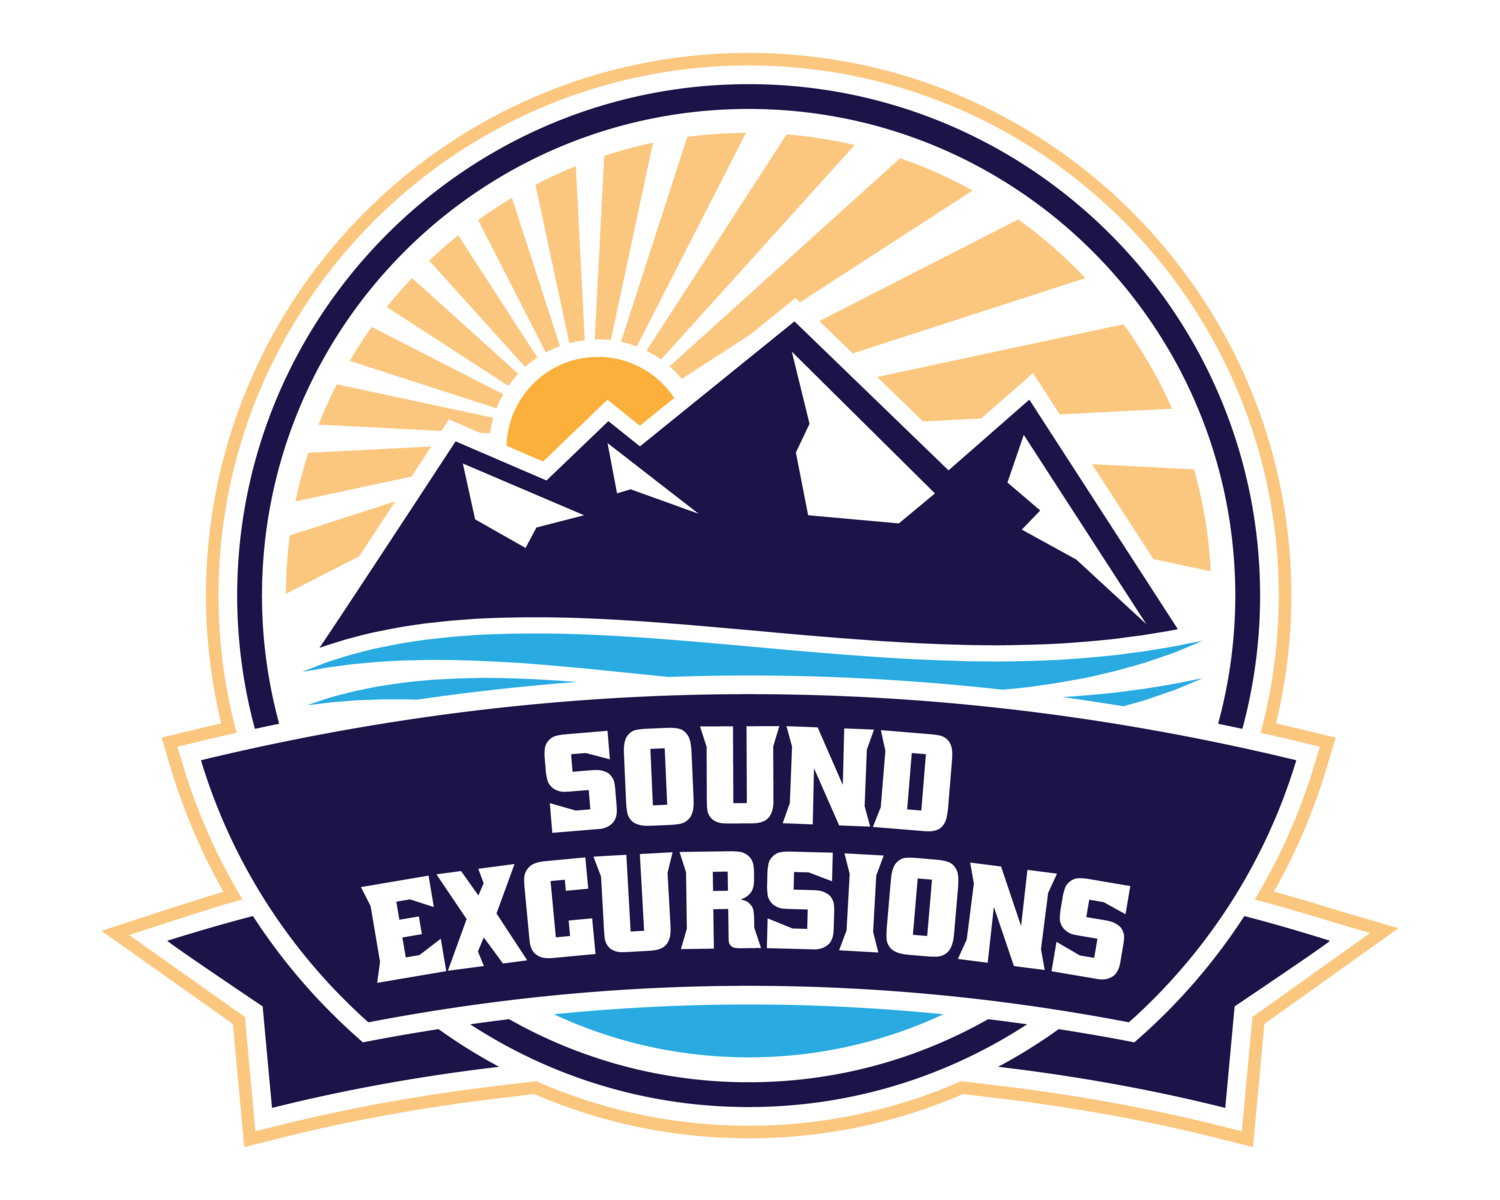 Sound Excursions